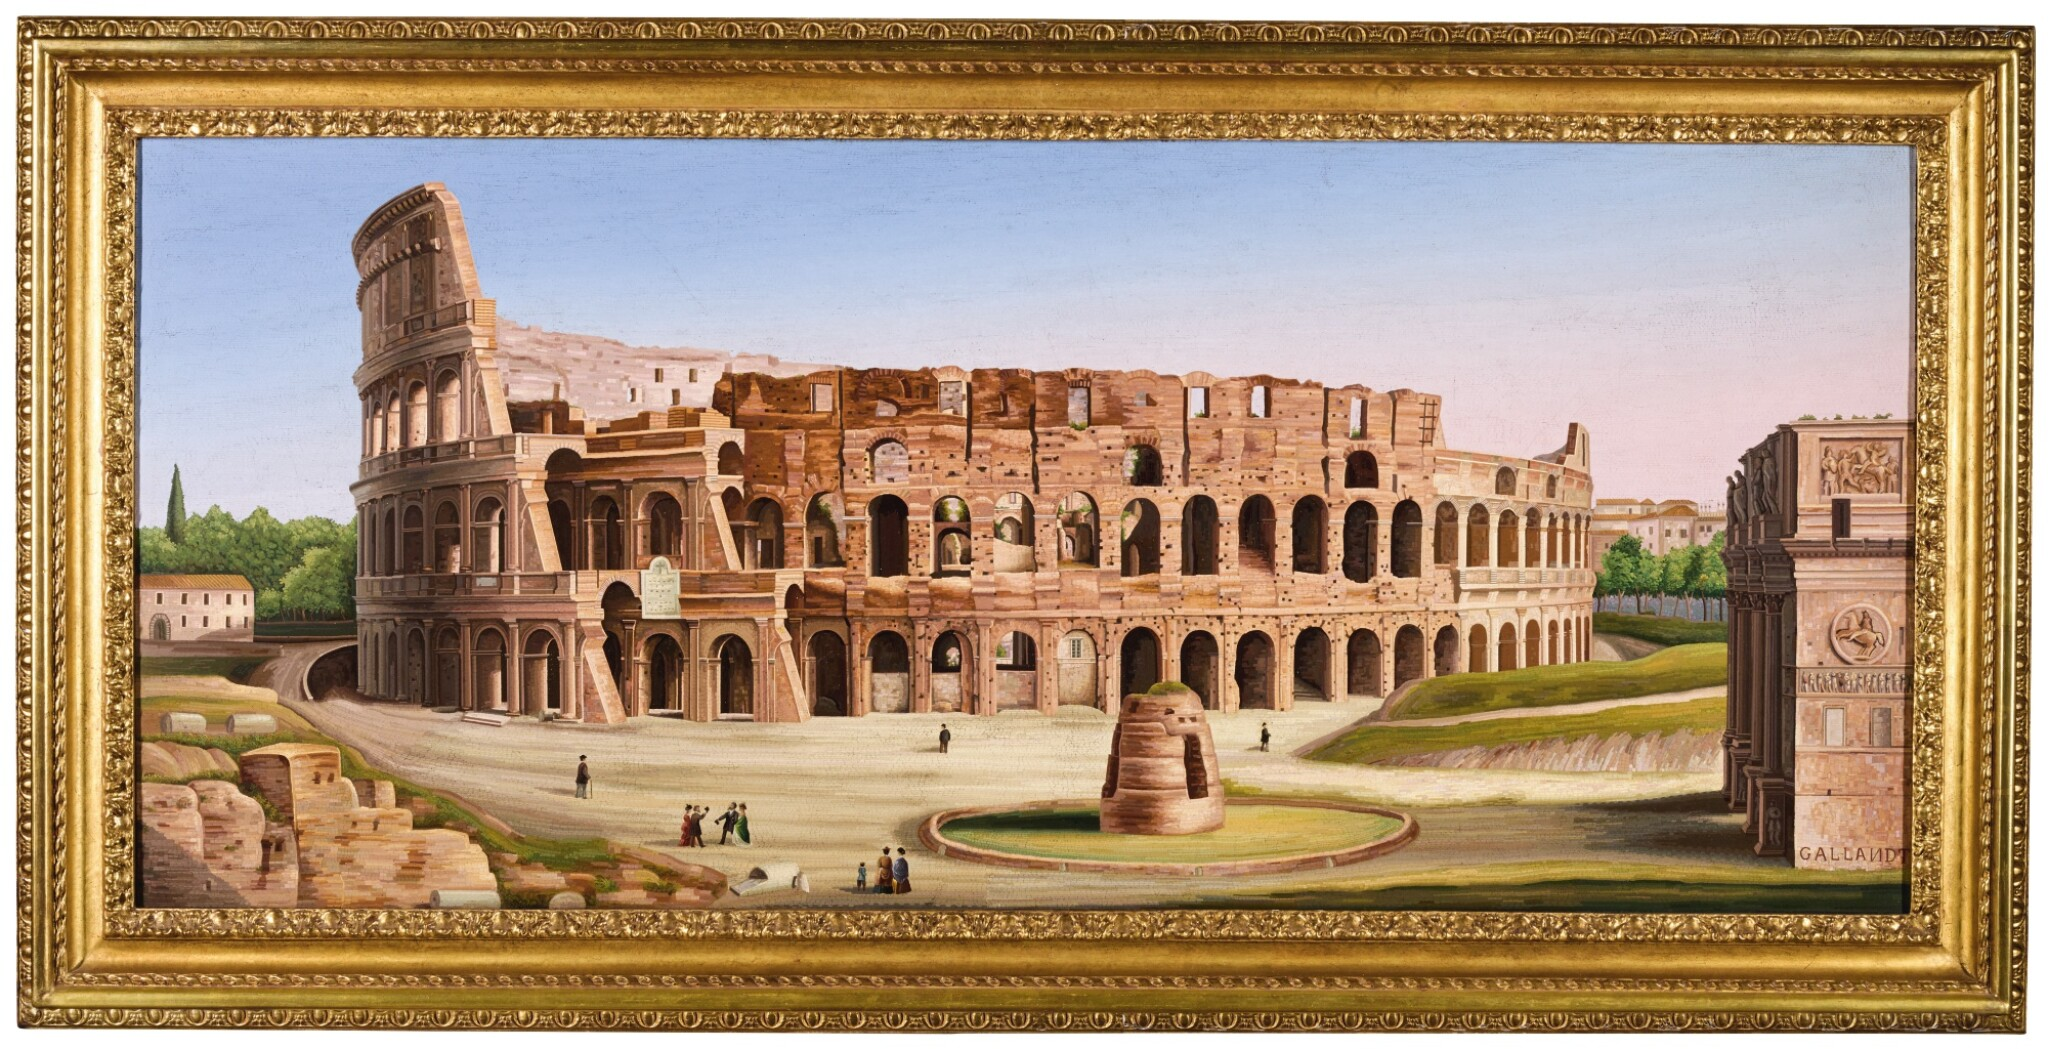 View full screen - View 1 of Lot 14. A LARGE SCALE ITALIAN MICROMOSAIC PANEL OF THE COLOSSEUM, ROME CIRCA 1850-75, LUIGI A. GALLANDT.